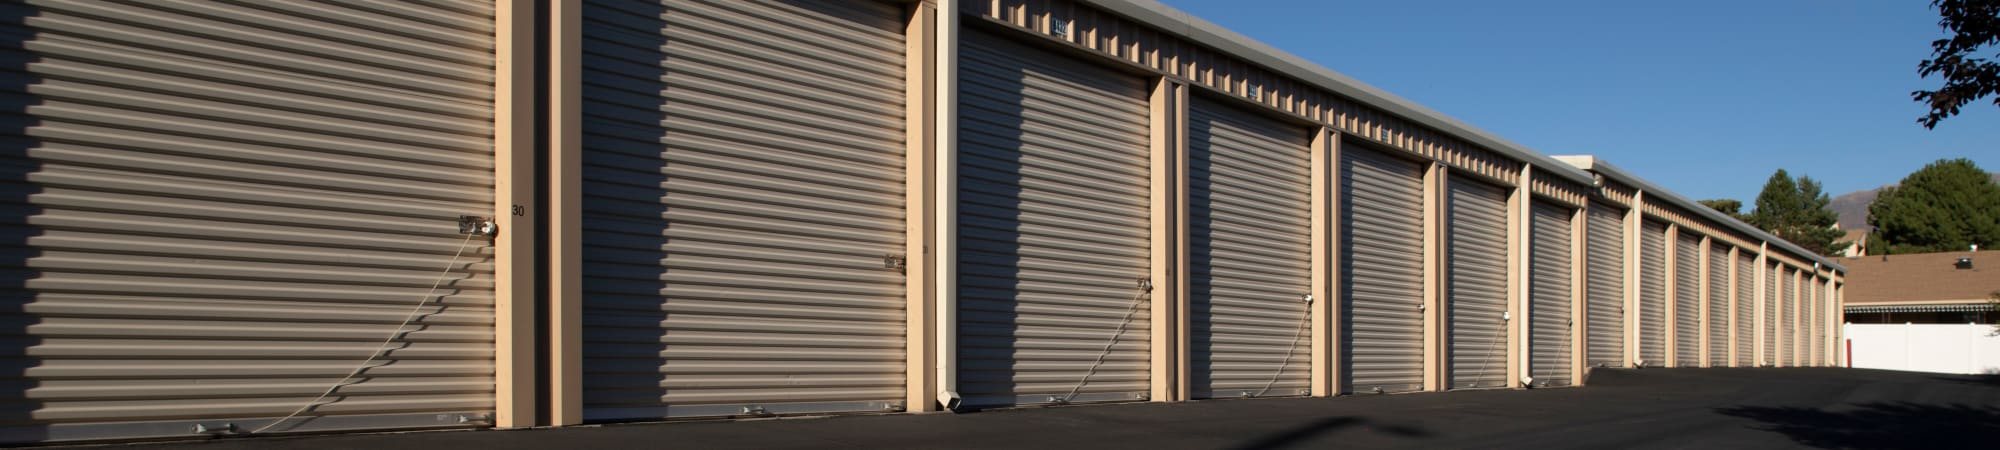 Lock It Up Self Storage self storage units for rent in Clearfield, Utah